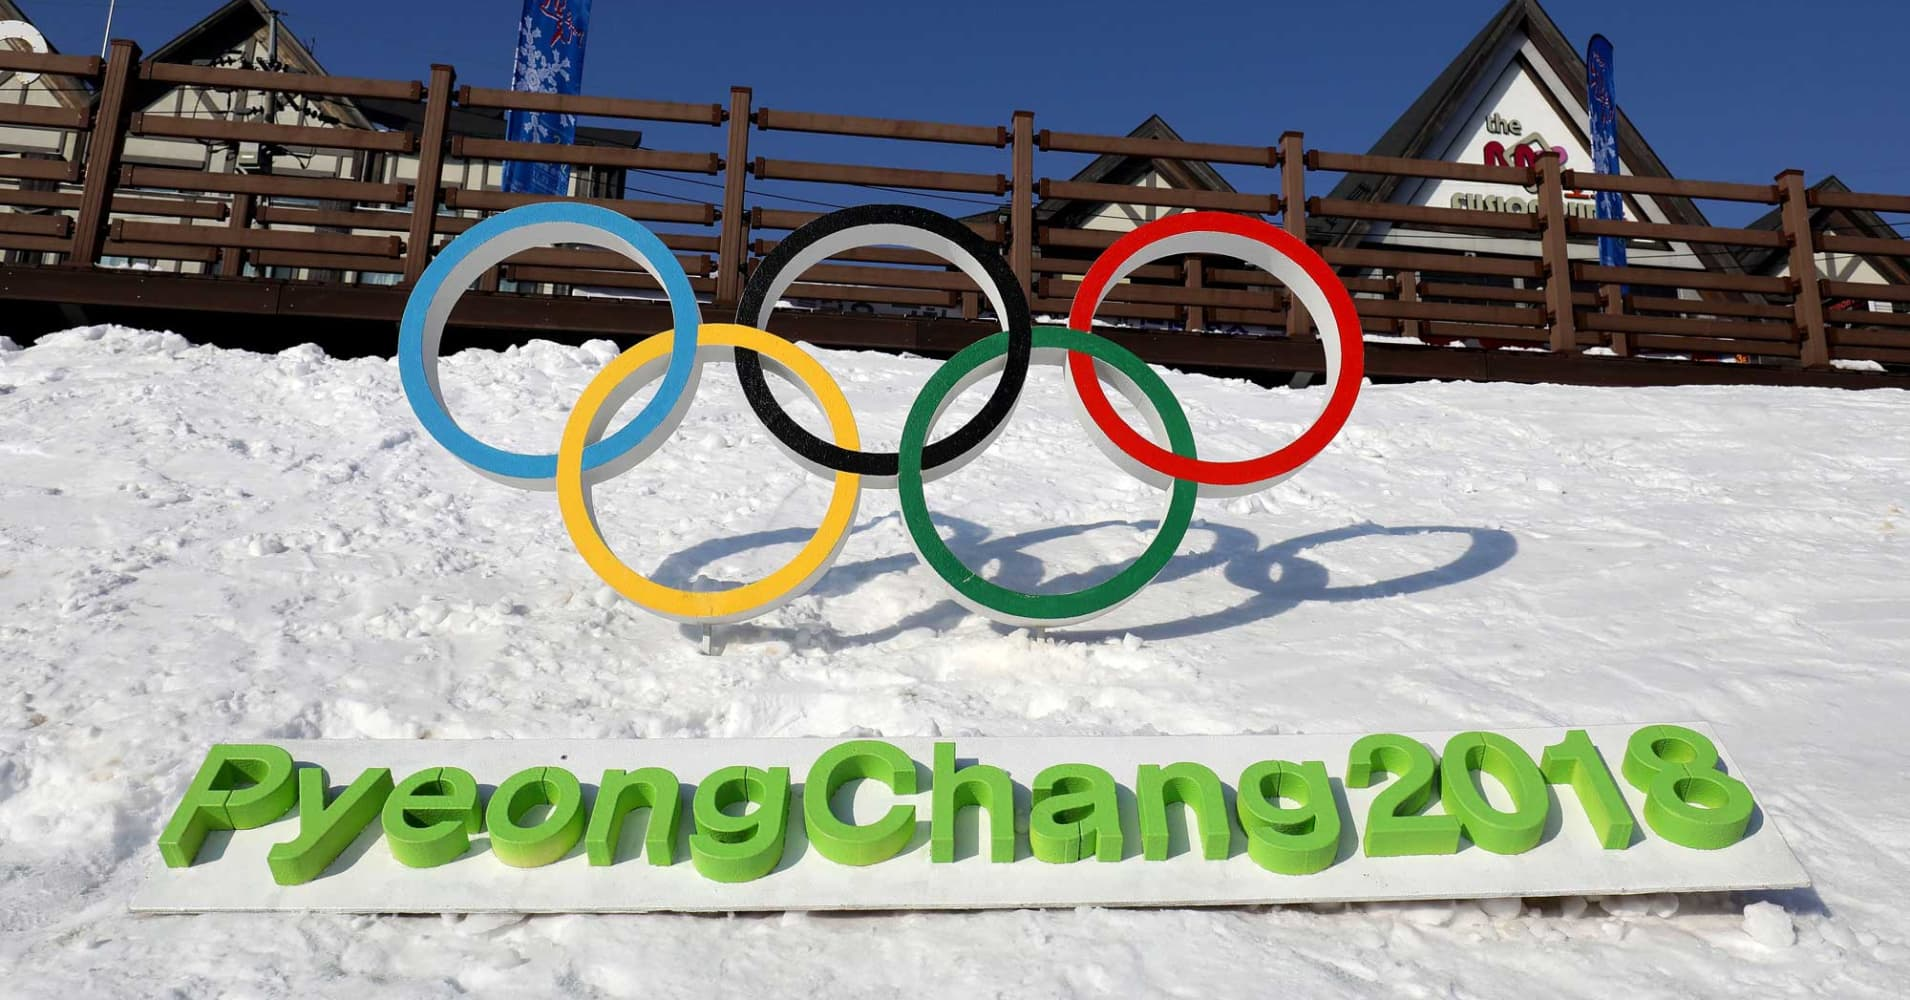 The Olympic rings is seen in Hoenggye town, near the venue for the Opening and Closing ceremony ahead of PyeongChang 2018 Winter Olympic Games in Pyeongchang-gun, South Korea.